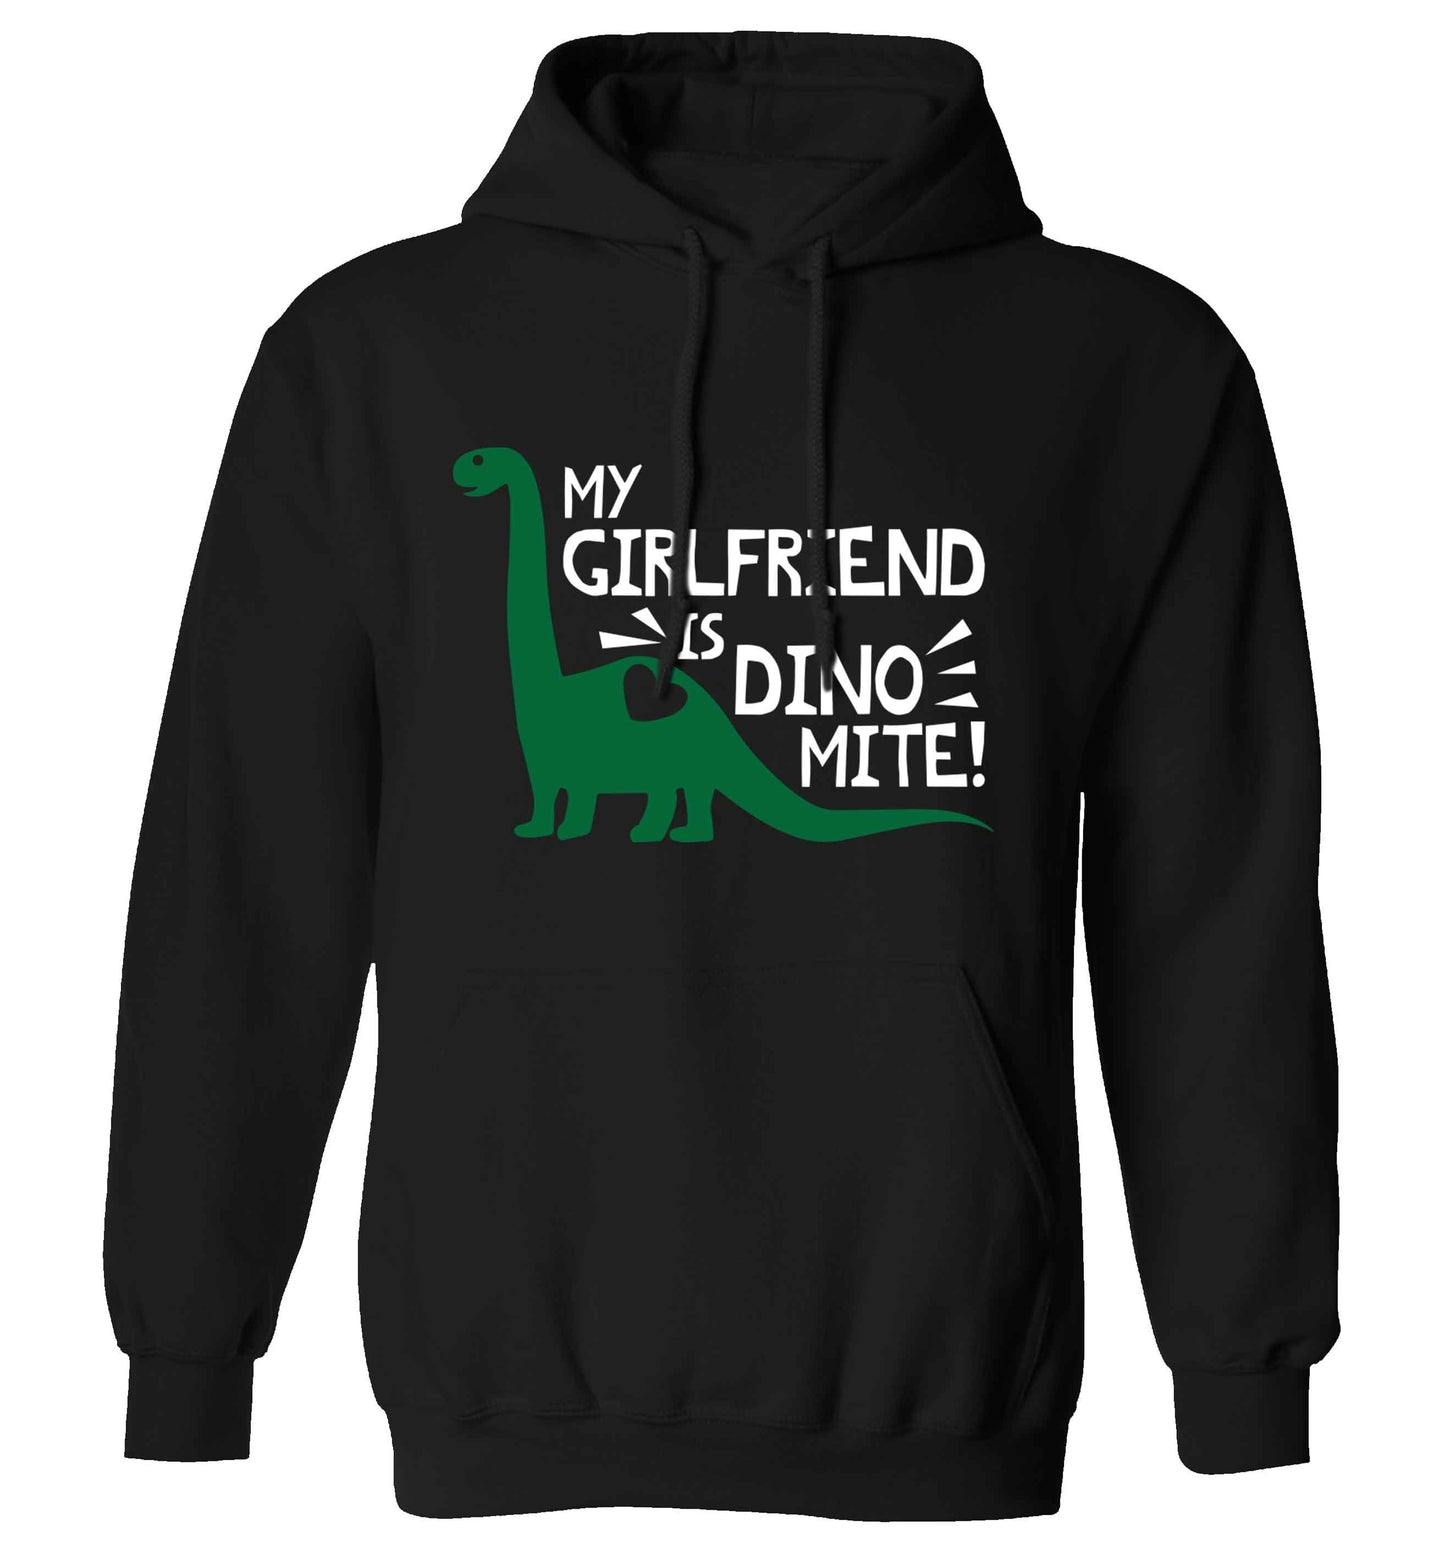 My girlfriend is dinomite! adults unisex black hoodie 2XL